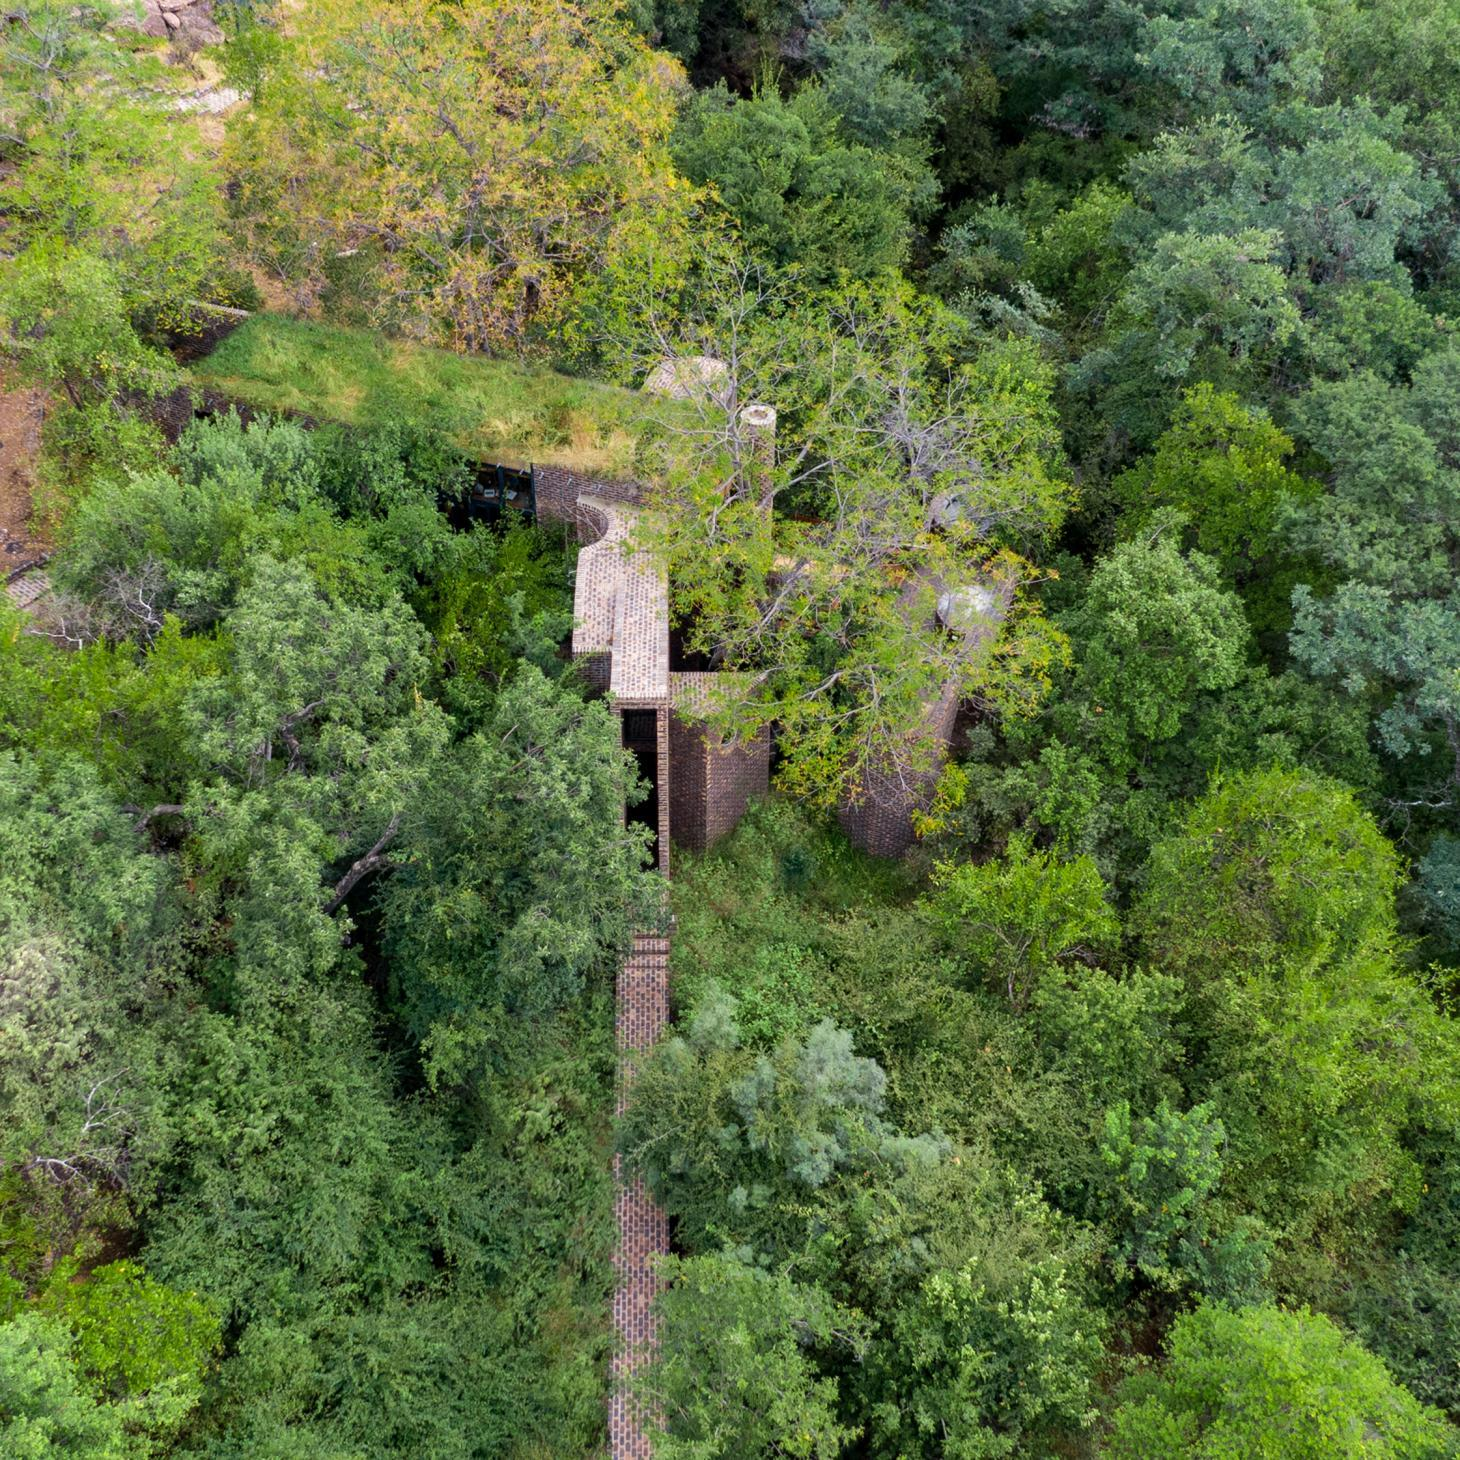 this brick house in South Africa is hidden within a thick forest